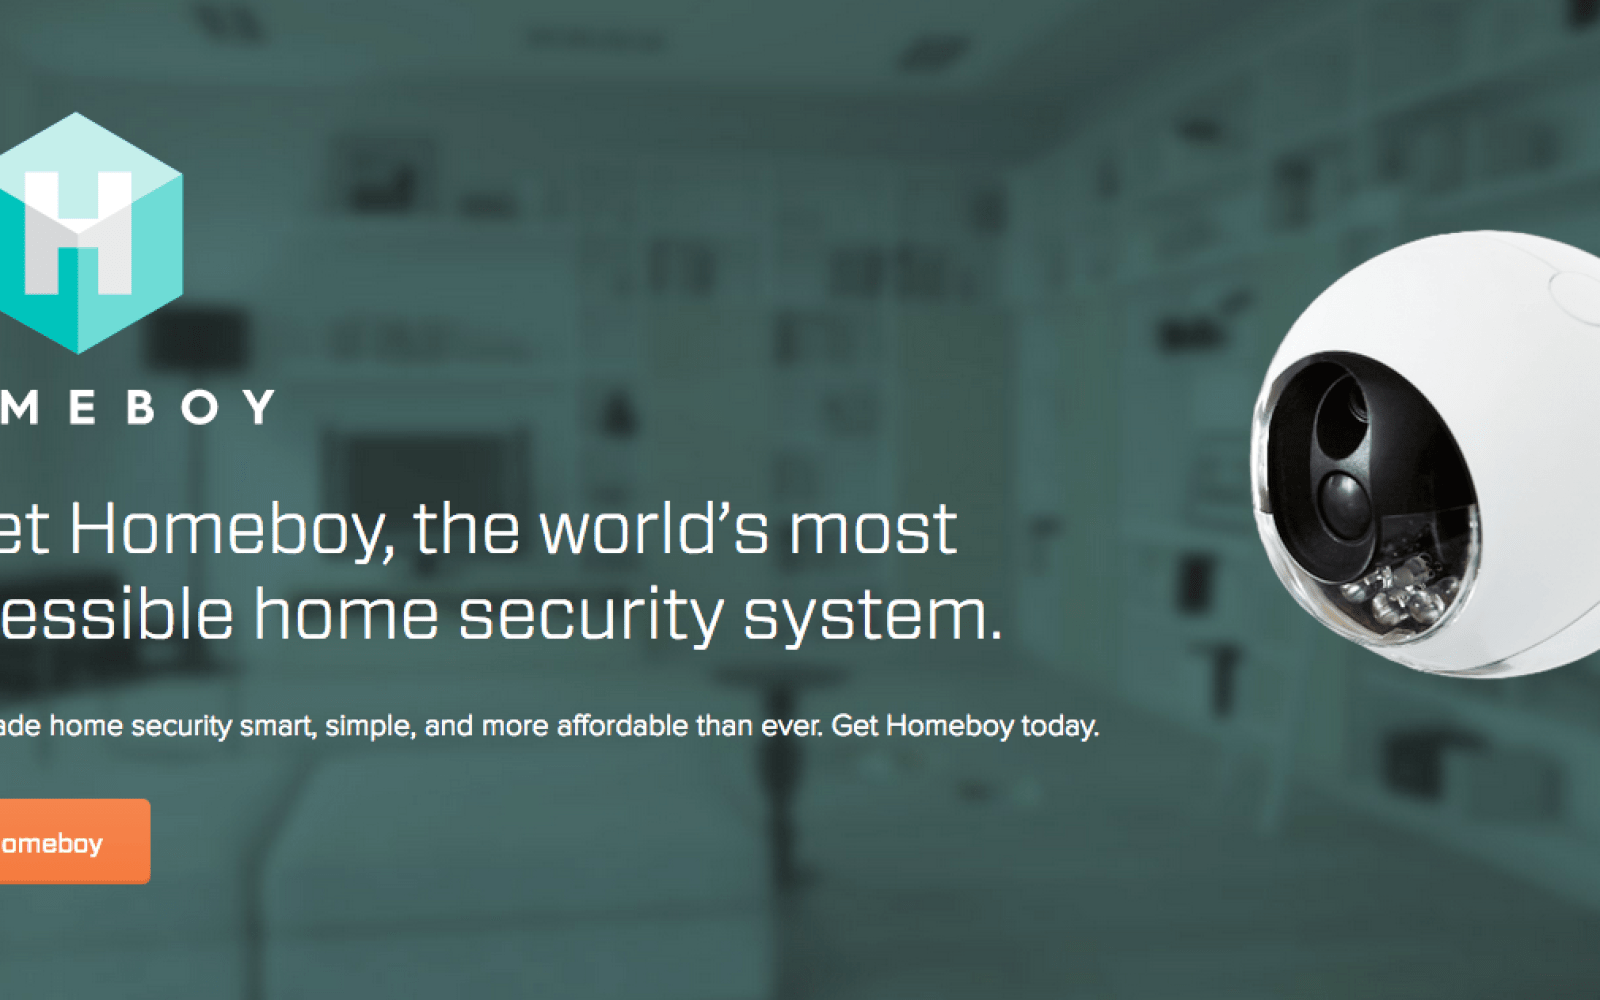 The Homeboy cam simplifies home surveillance with extended battery life and magnetic mounting